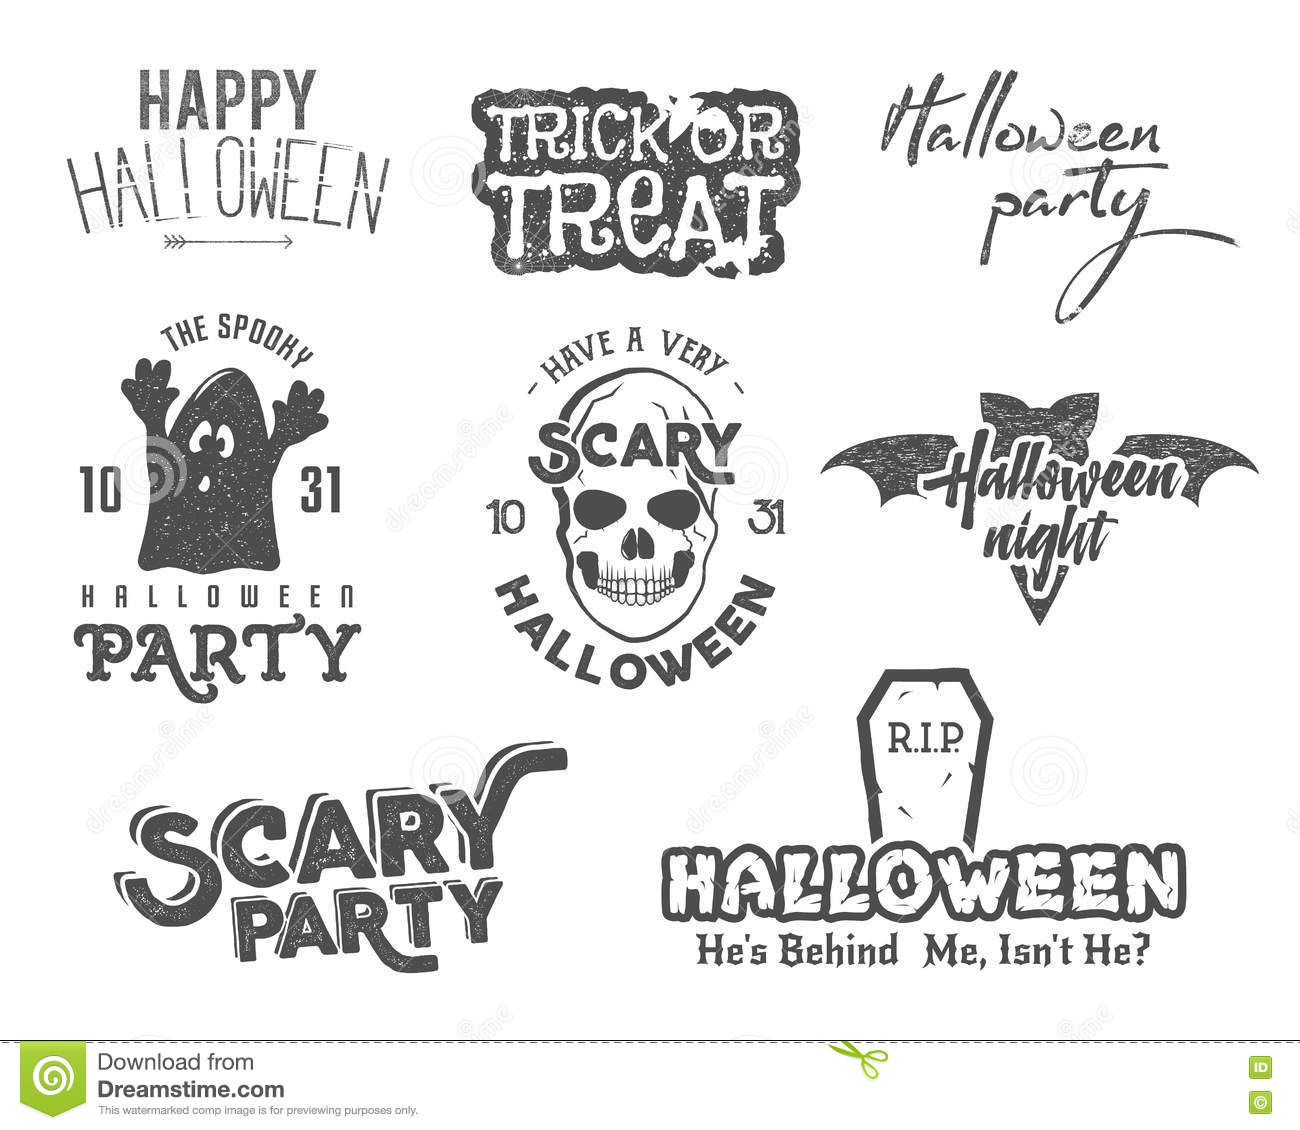 Halloween 2016 party vintage labels tee designs with scary halloween 2016 party vintage labels tee designs with scary symbols ghost bat skull and typography elements buycottarizona Image collections